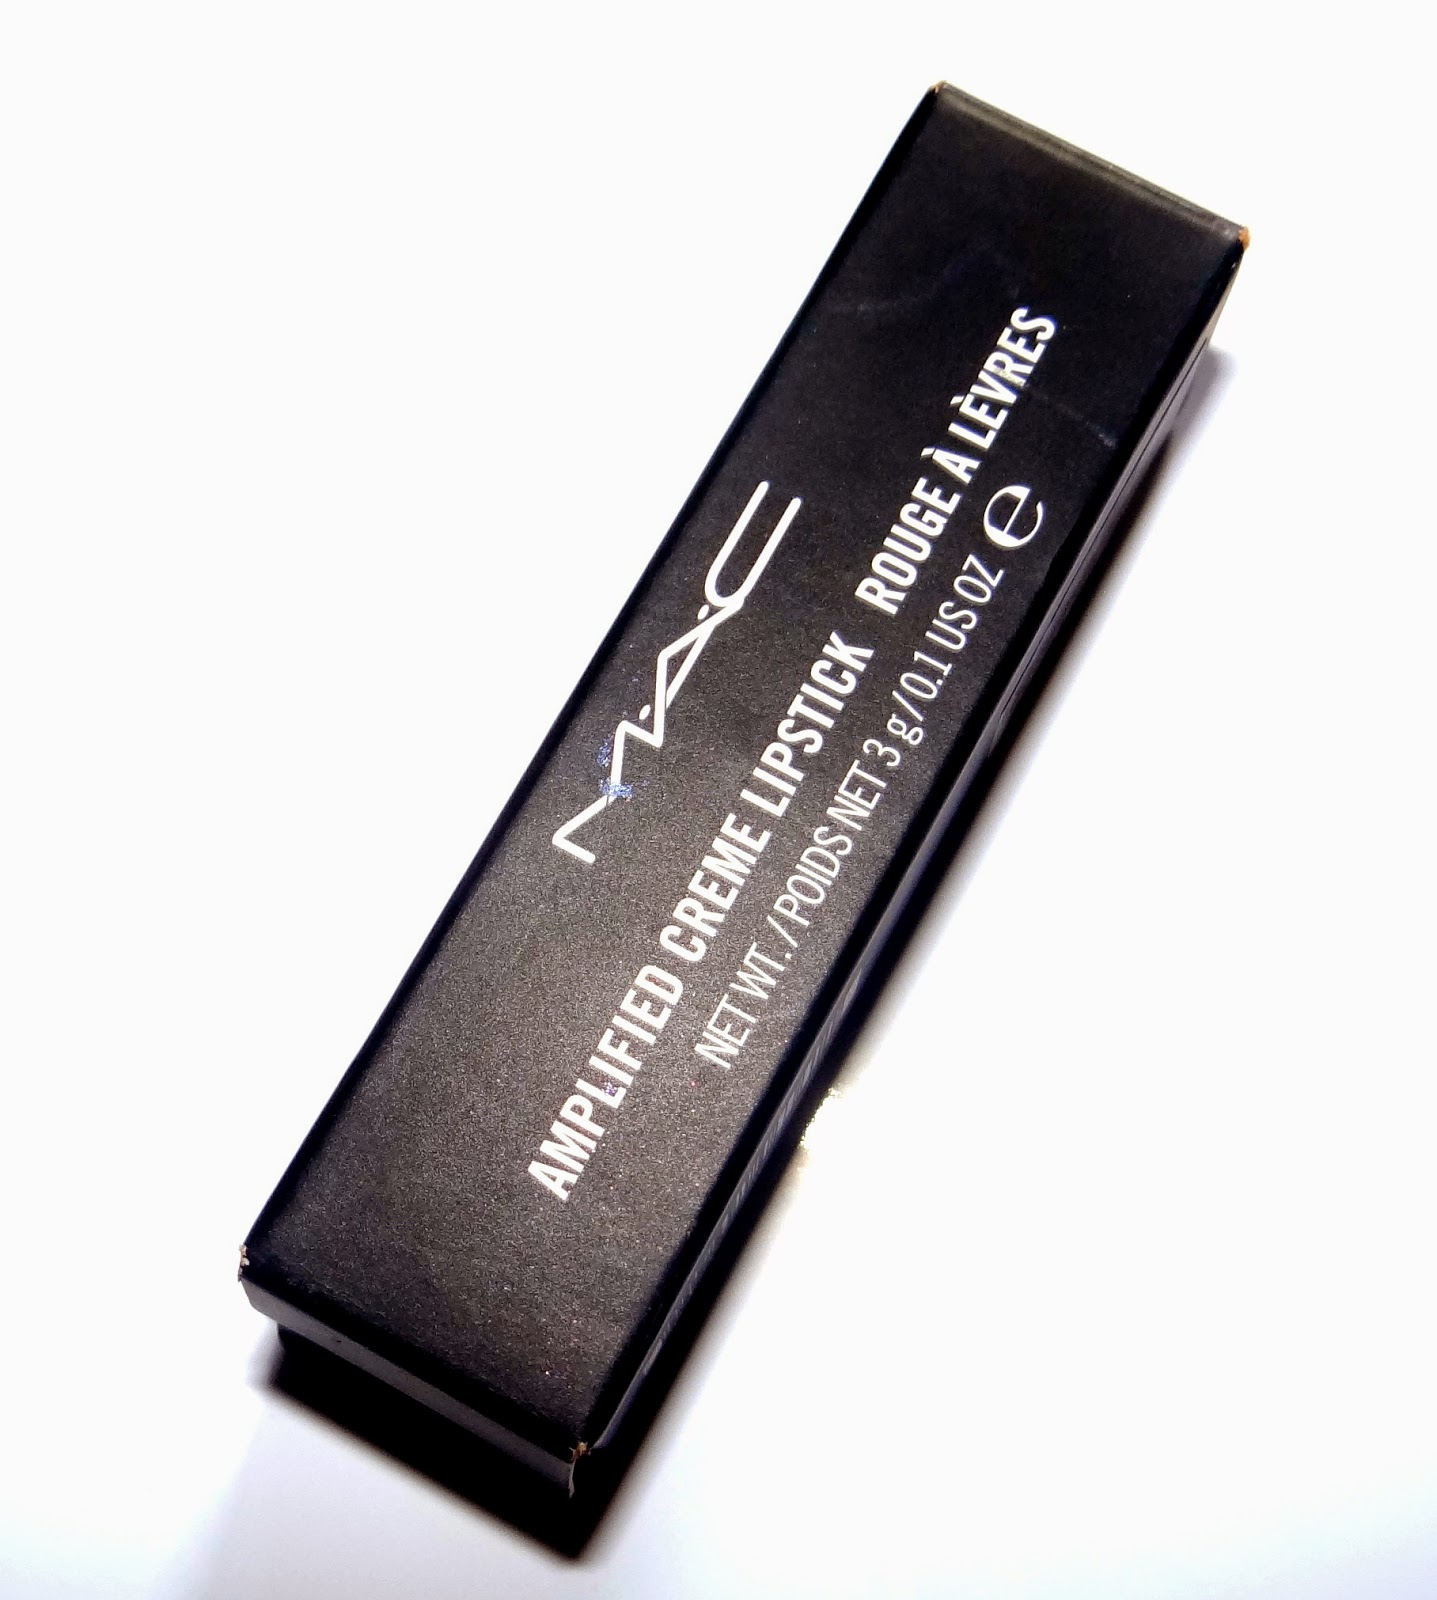 MAC Up the Amp Lipstick - Review and swatches, beauty blogger, Indian Beauty Blogger, Chamber of Beauty